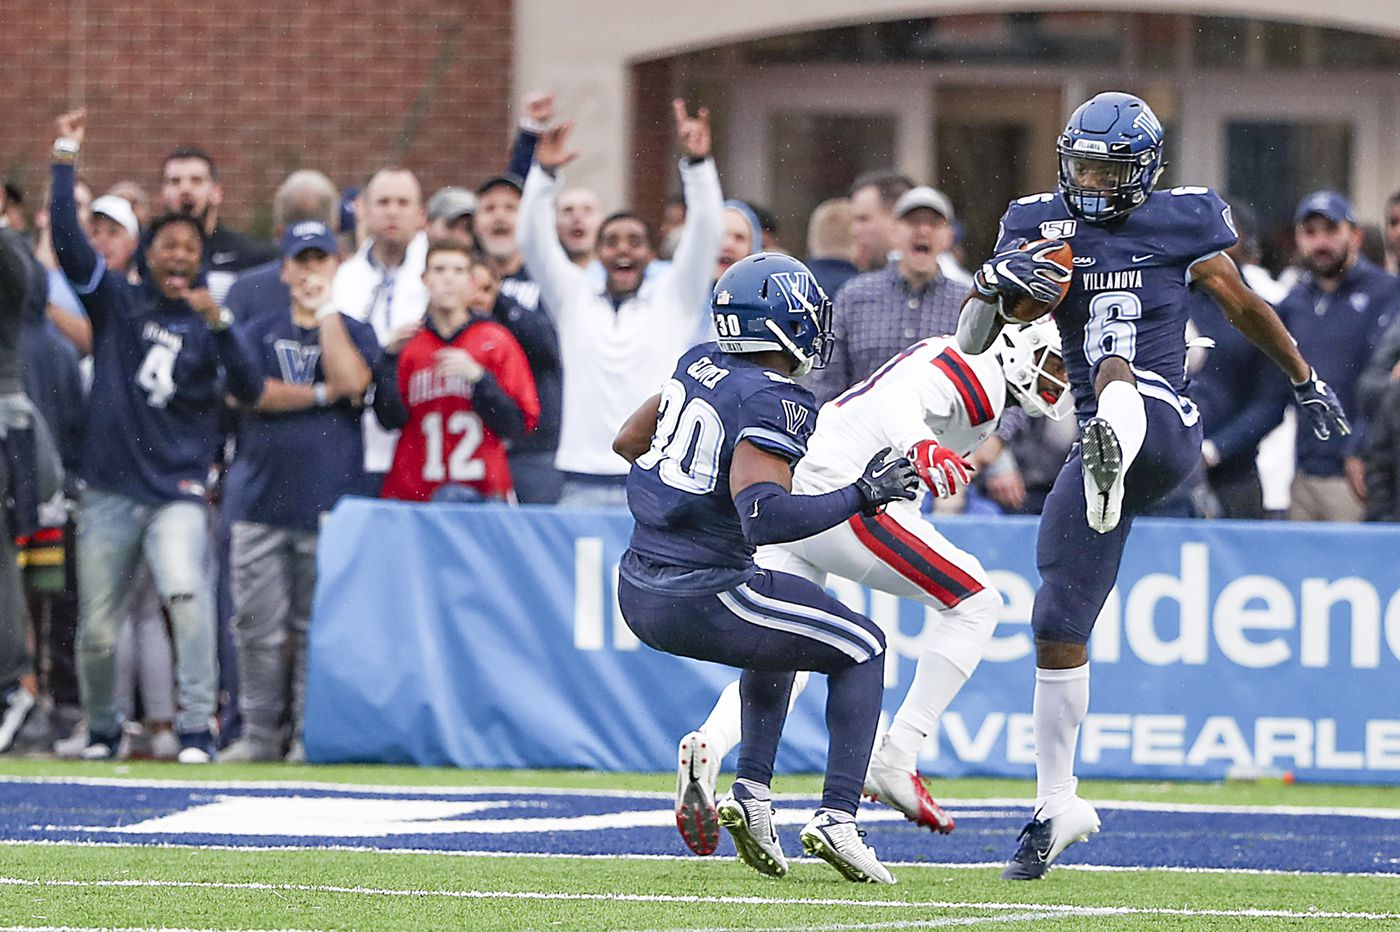 Villanova defensive back Jaquan Amos' versatility causes headaches for opposing QBs